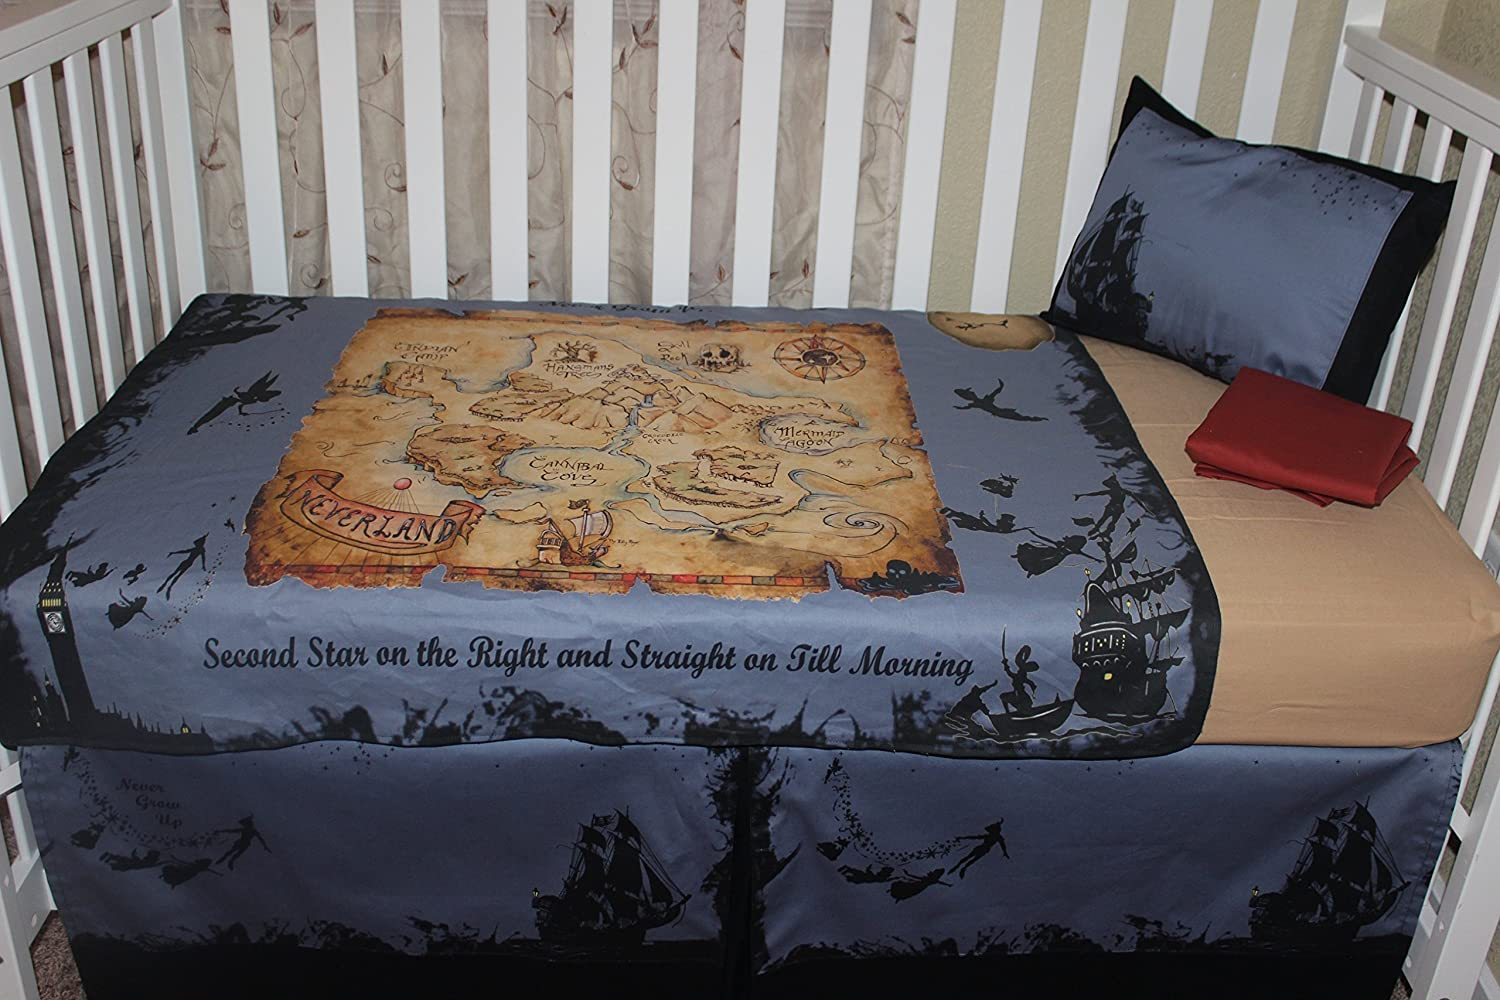 Pcs peter pan bedding set duvet cover fitted sheet pillow case worl - Pcs Peter Pan Bedding Set Duvet Cover Fitted Sheet Pillow Case Worl 5